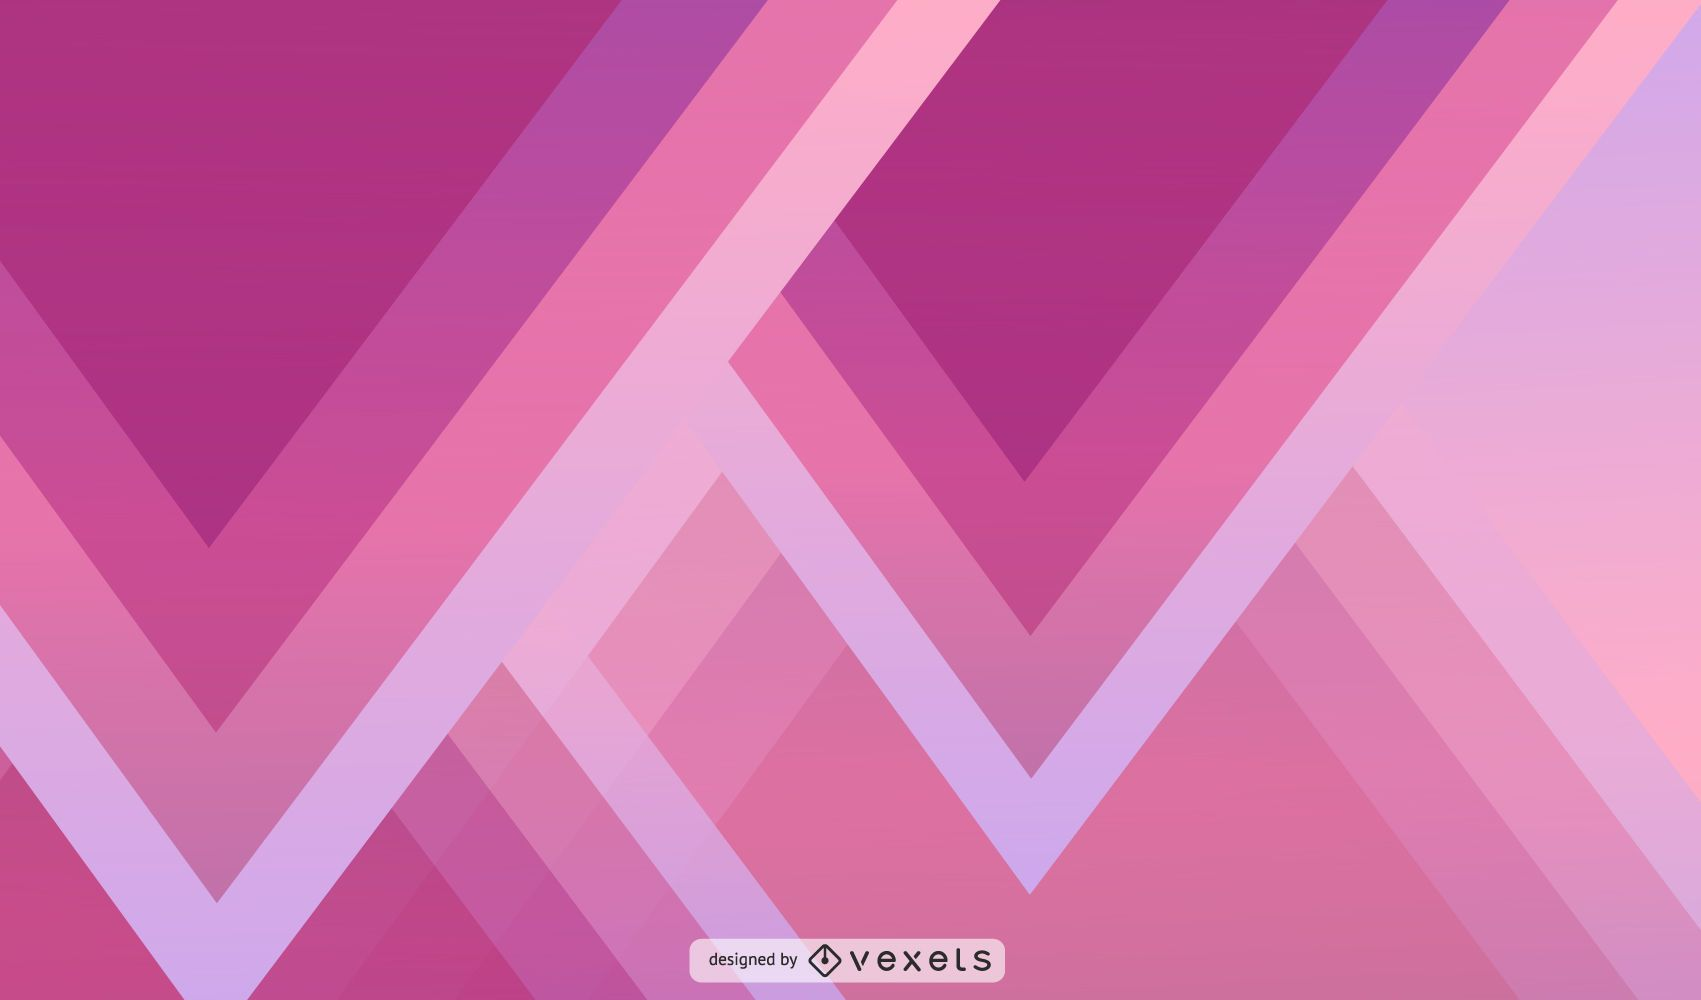 Abstract Triangle Wallpaper Design